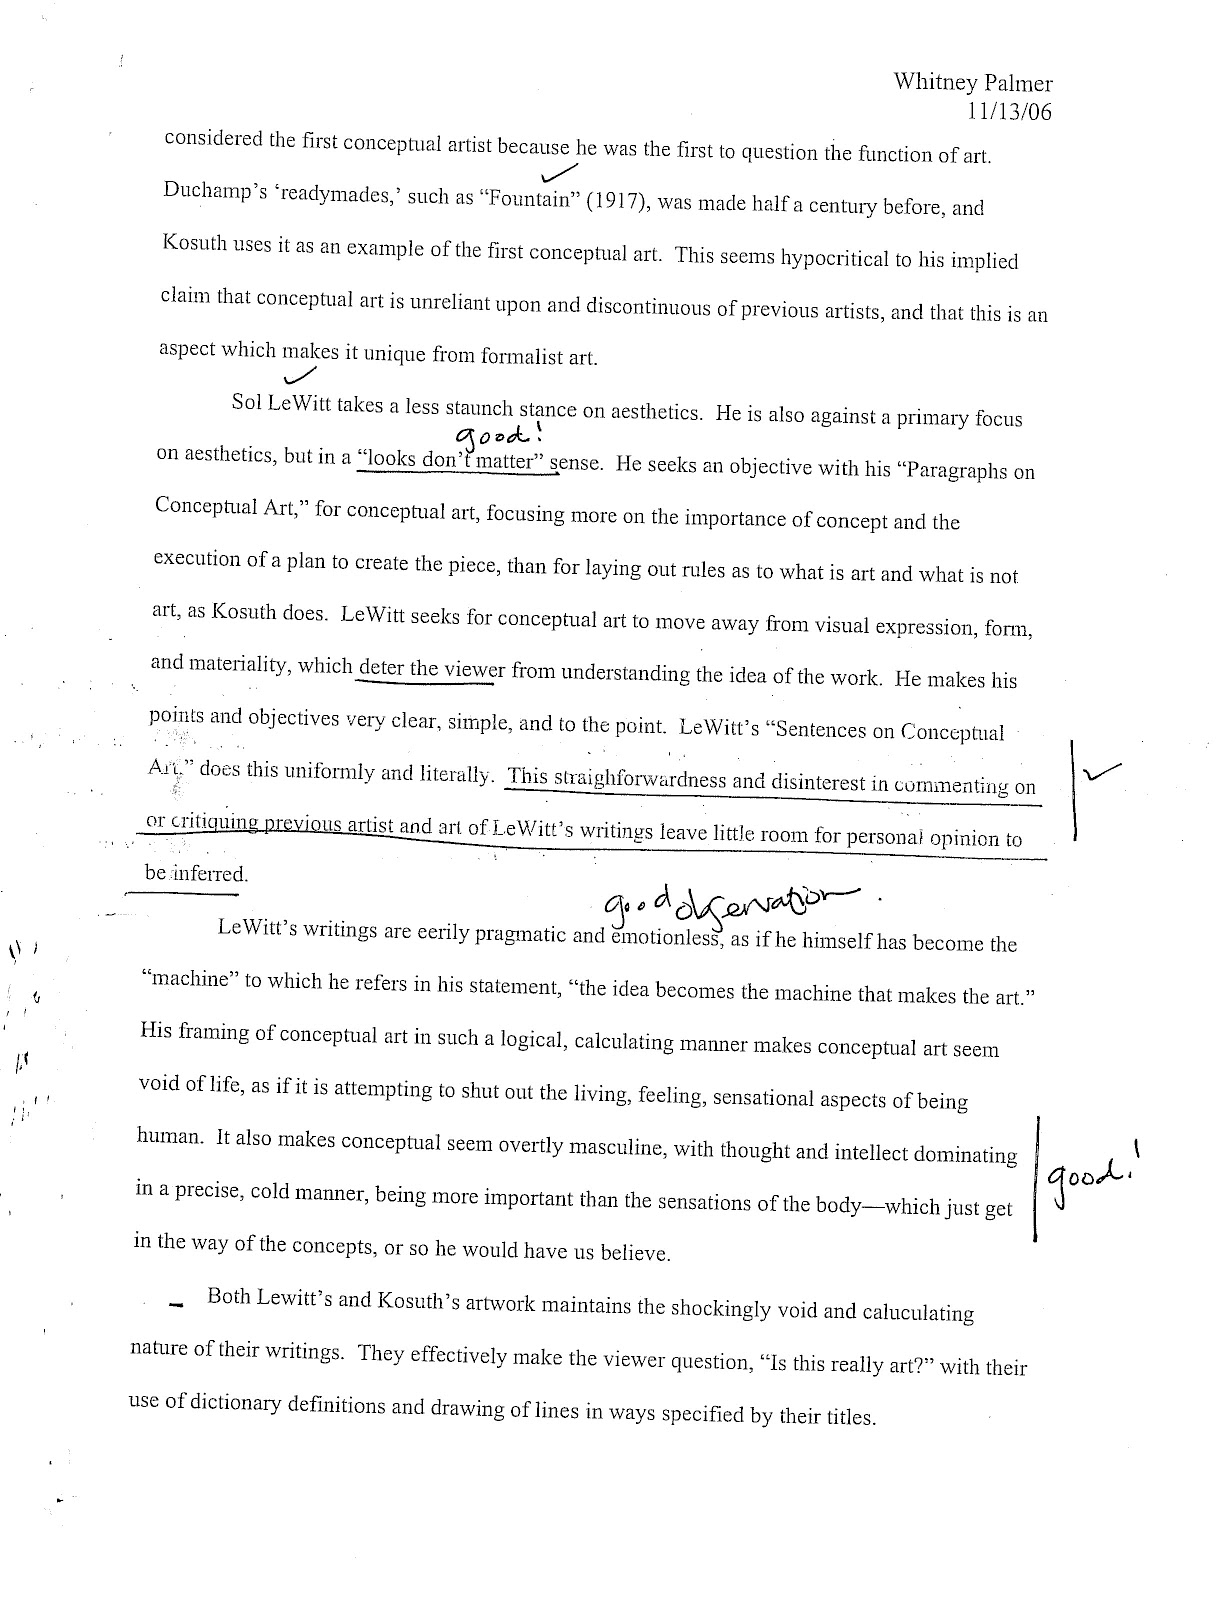 essay from art history fall contemporary art post  essay from art history 354 fall 2006 contemporary art post 1945 wwii a comparative analysis on sol lewitt s paragraphs on conceptual art and sentences